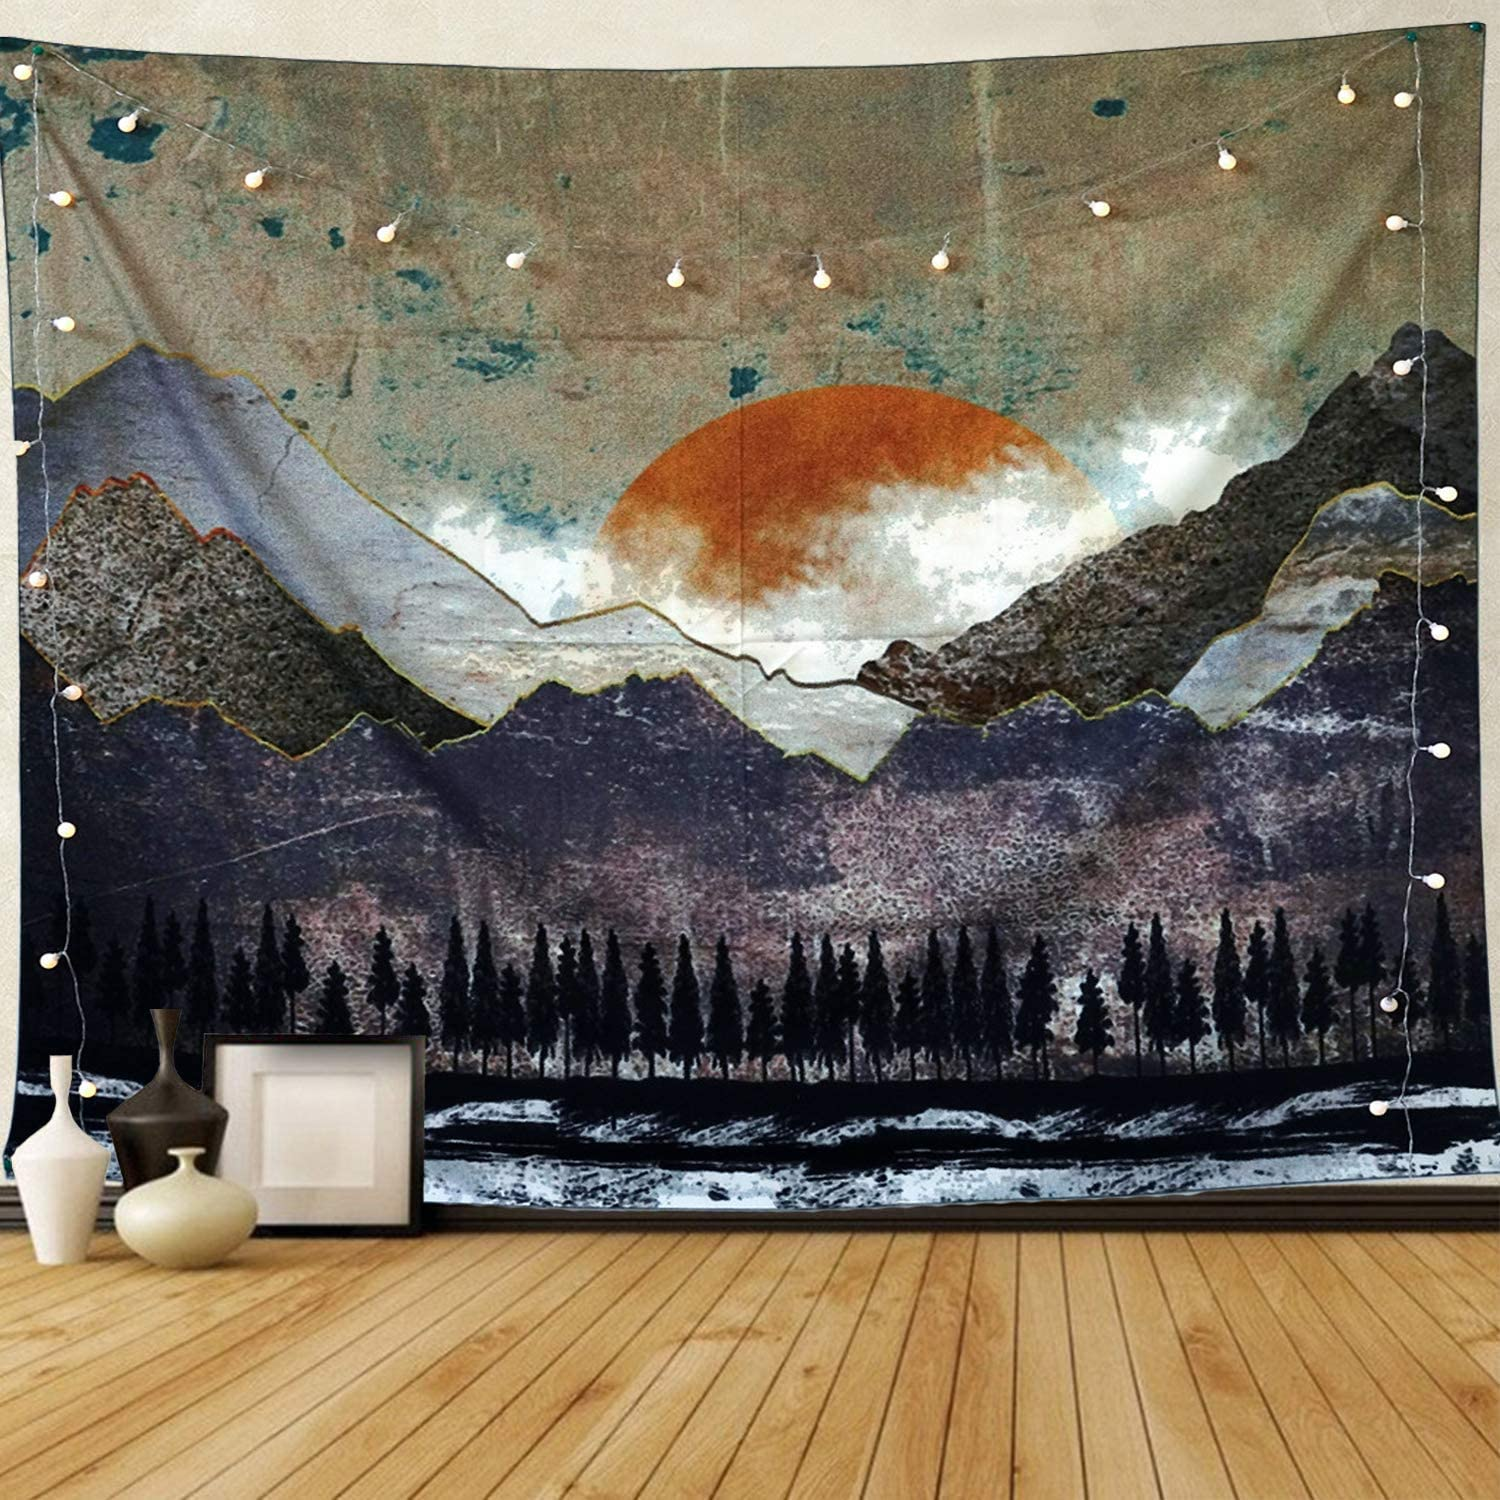 "Tapestry Misty Forest Tapestry Mountain Tapestry Nature Landscape Tapestry Japanese Style, Home Decor, W80""xL60"""